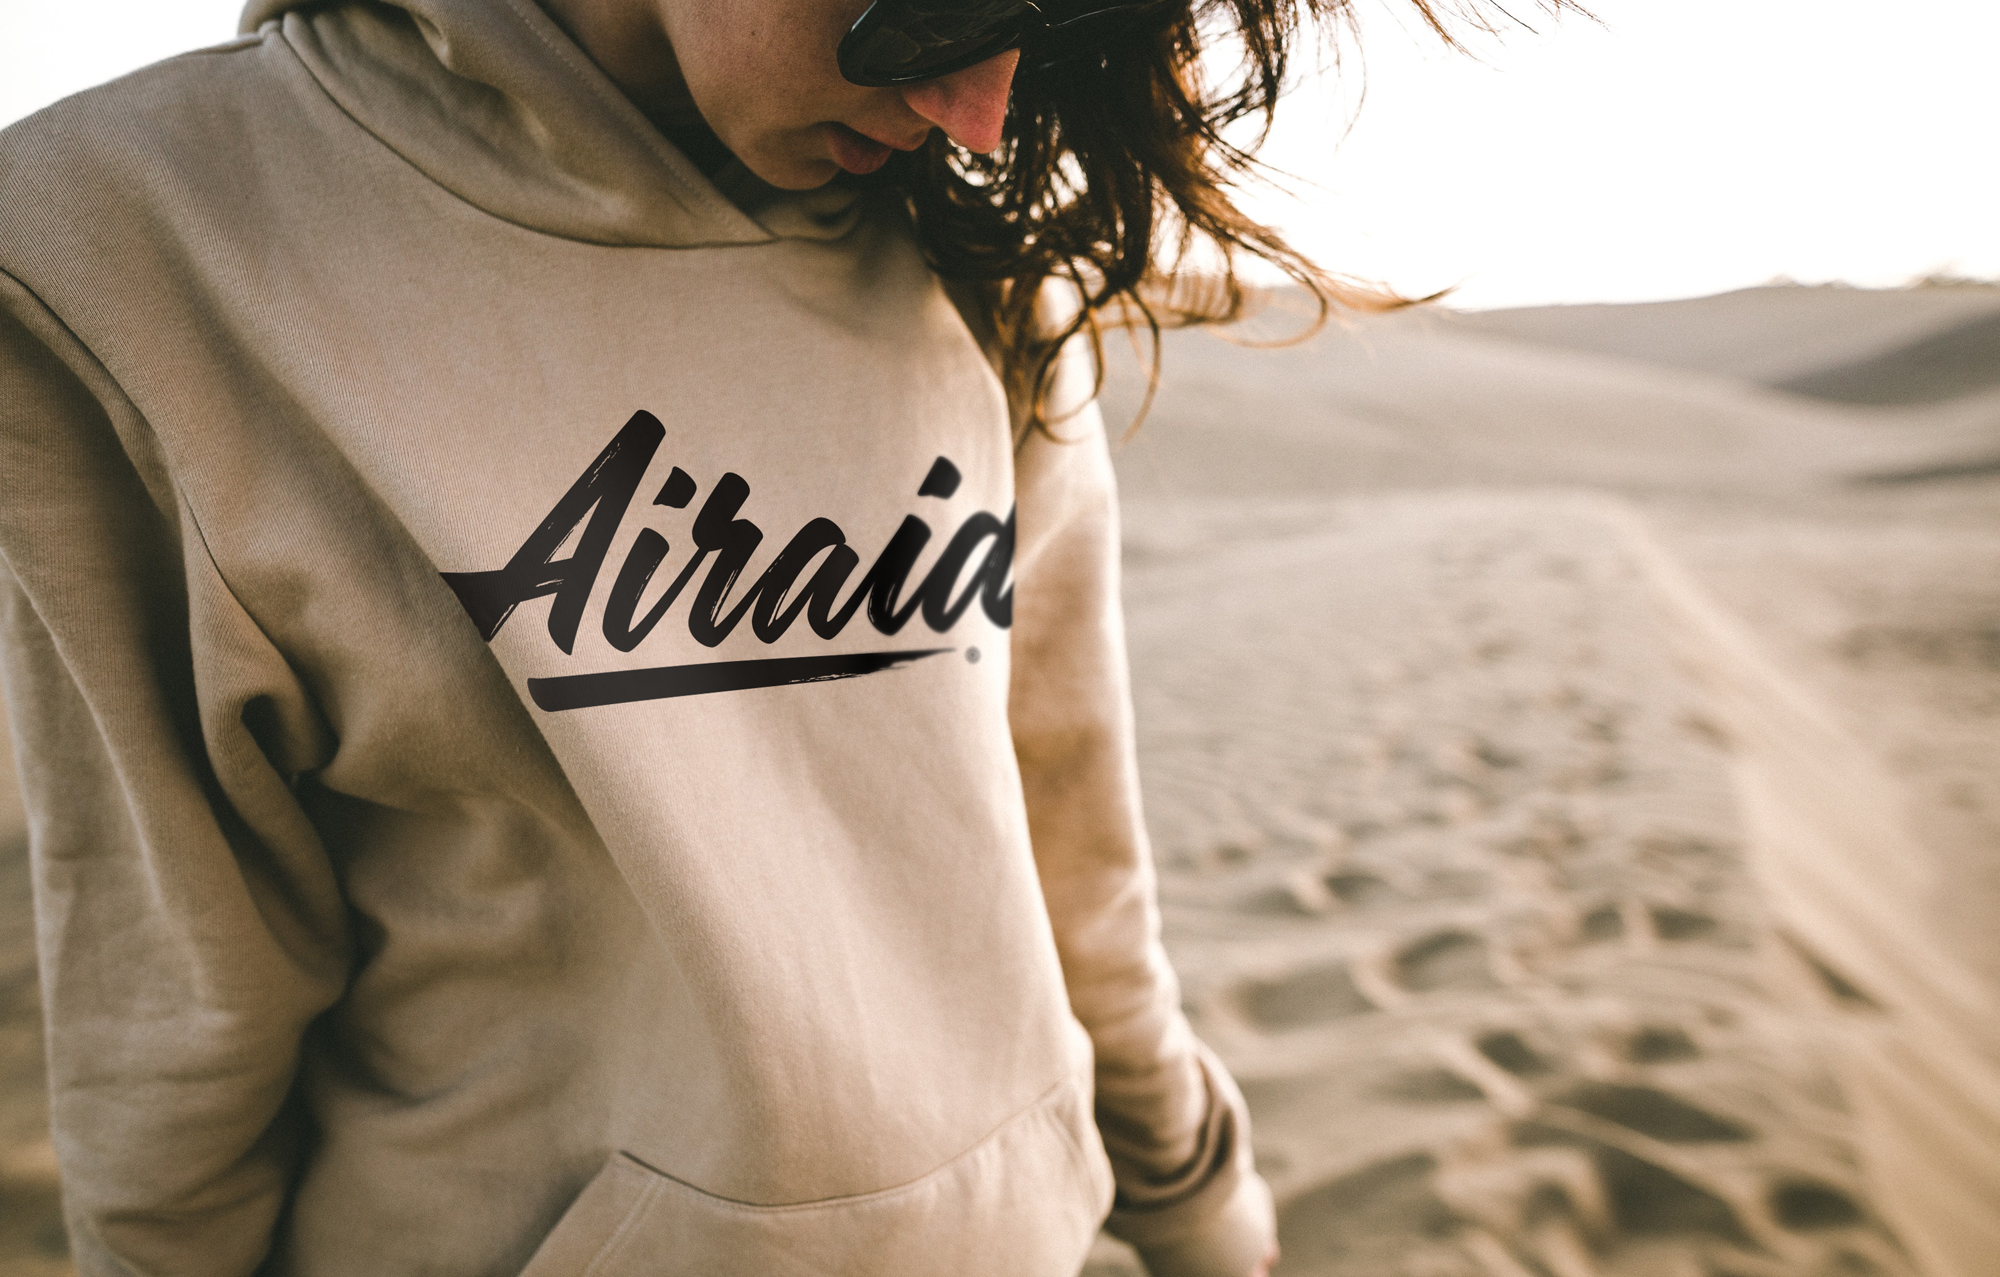 Wage_Wonderful_Airaid_Hoodie.jpg